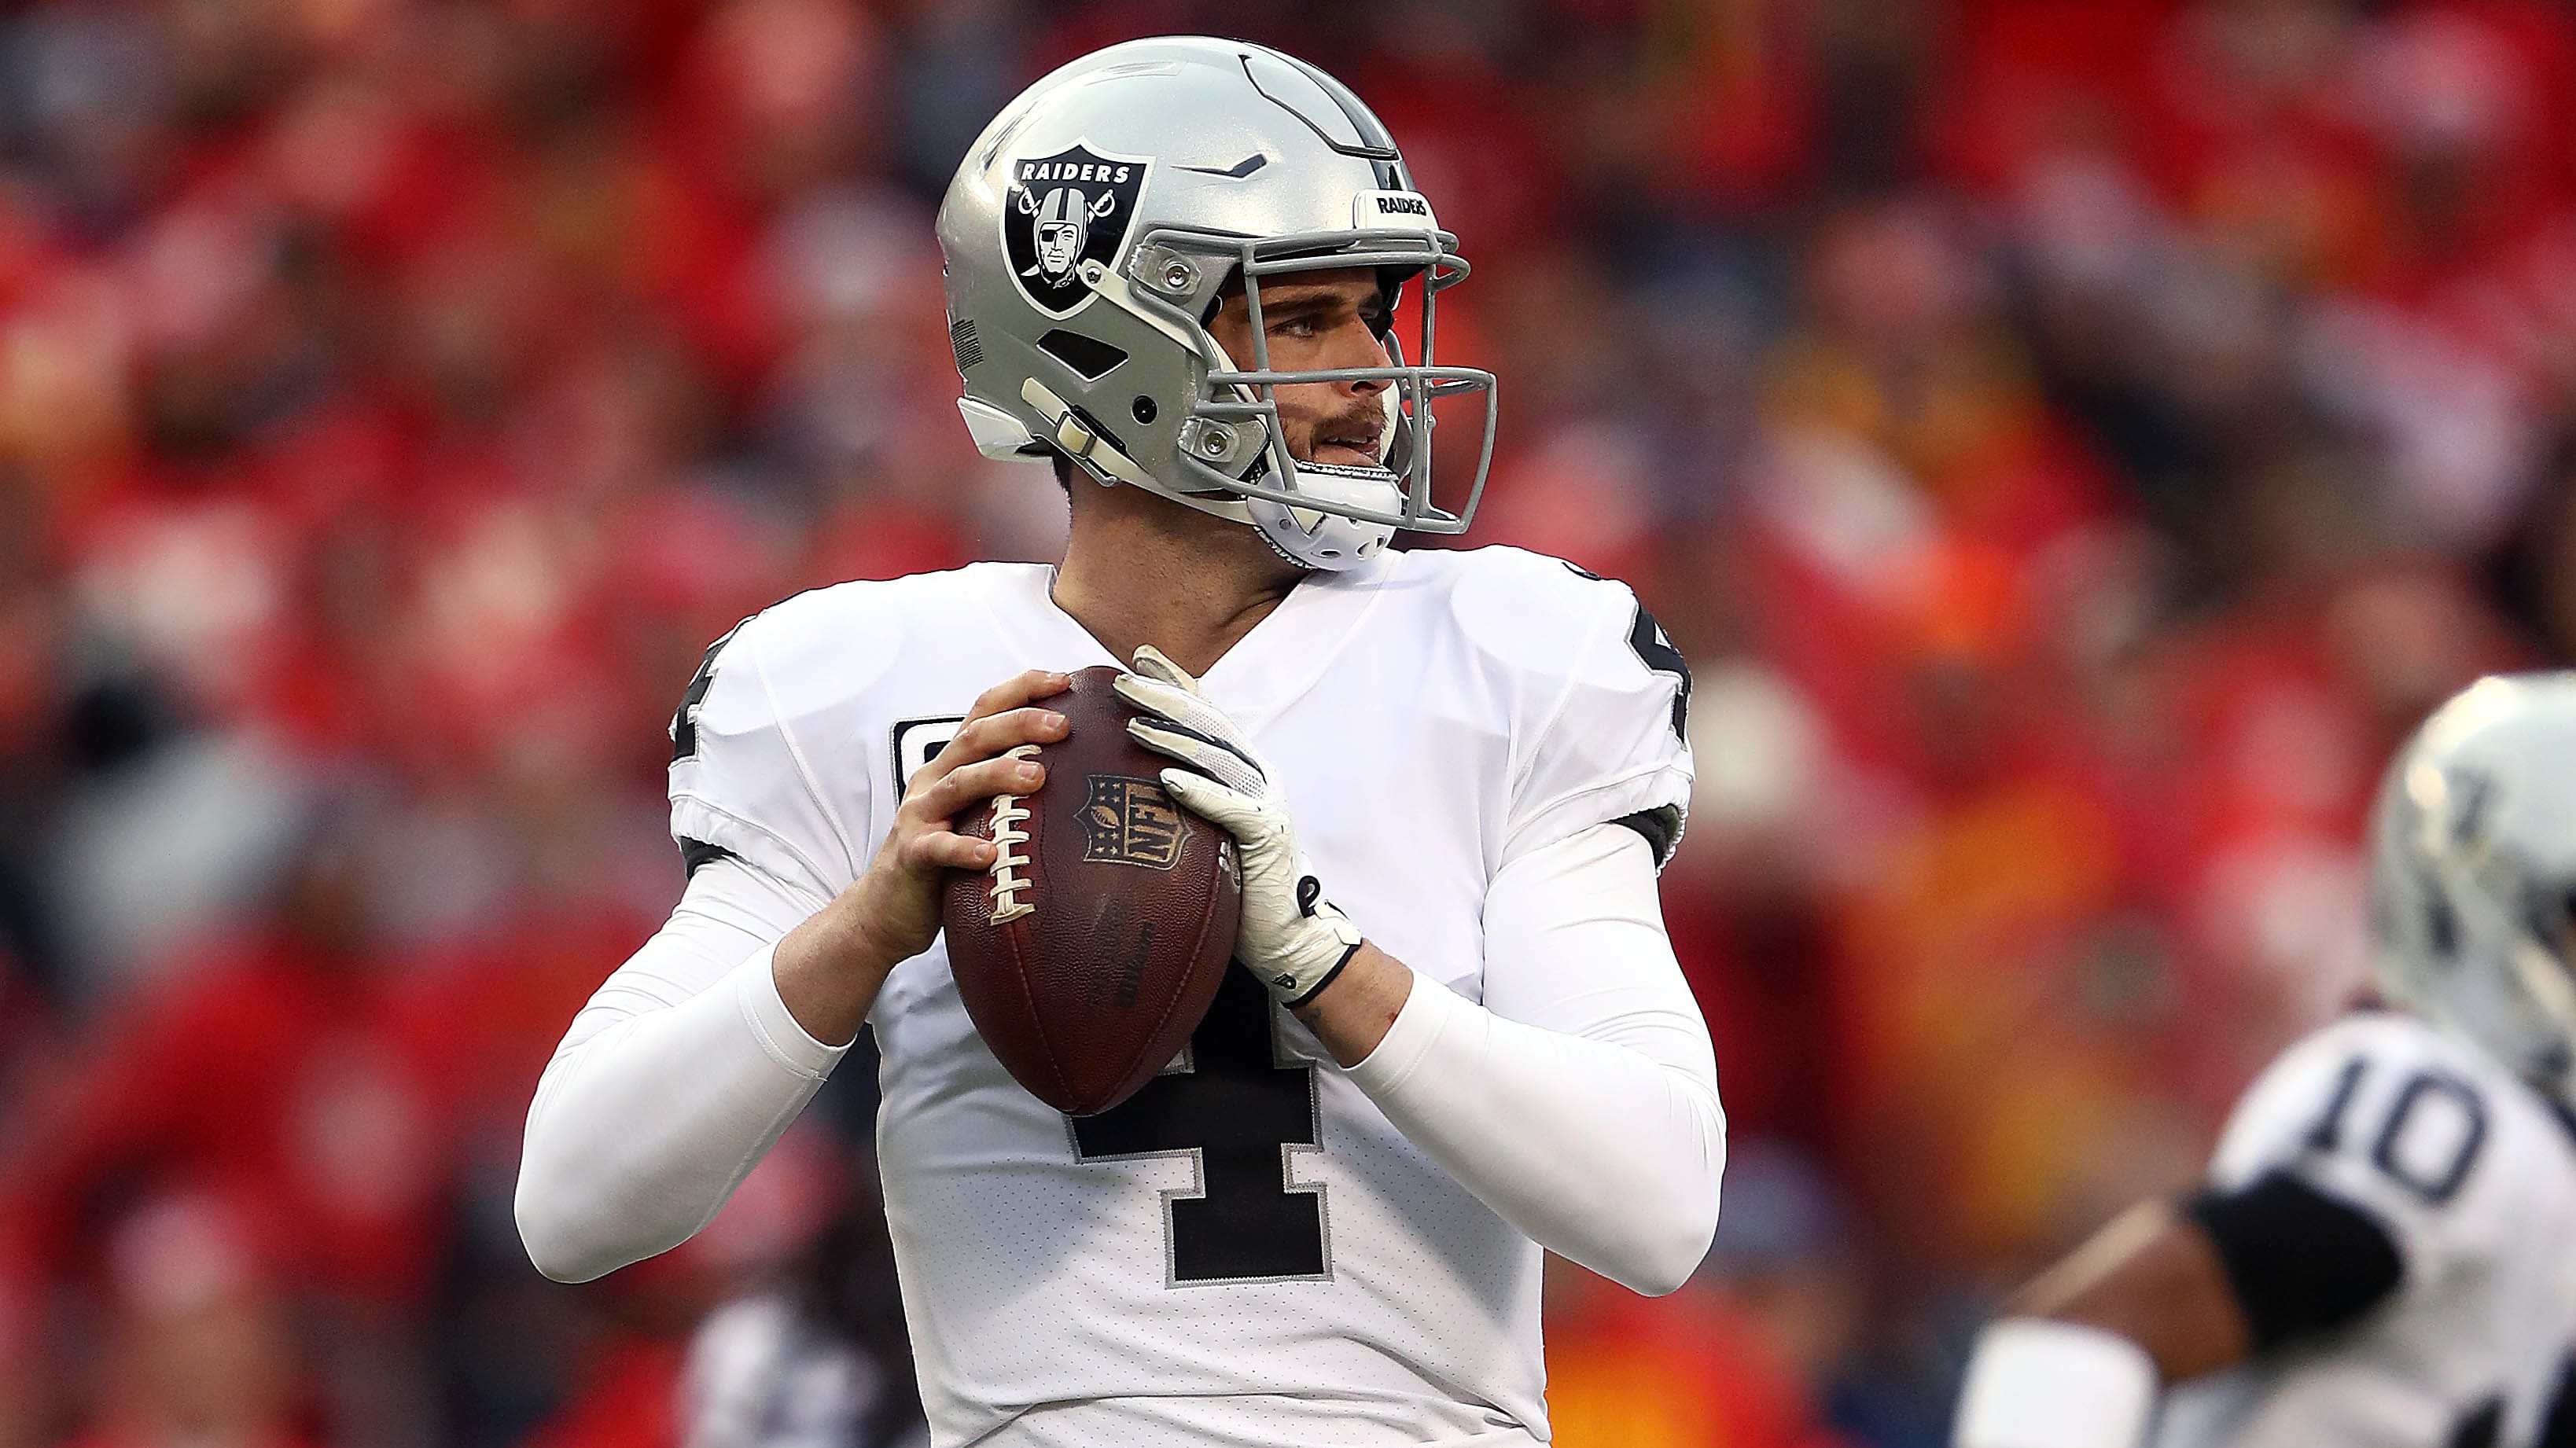 KANSAS CITY, MISSOURI - DECEMBER 30:  Quarterback Derek Carr #4 of the Oakland Raiders in action during the game against the Kansas City Chiefs at Arrowhead Stadium on December 30, 2018 in Kansas City, Missouri. (Photo by Jamie Squire/Getty Images)